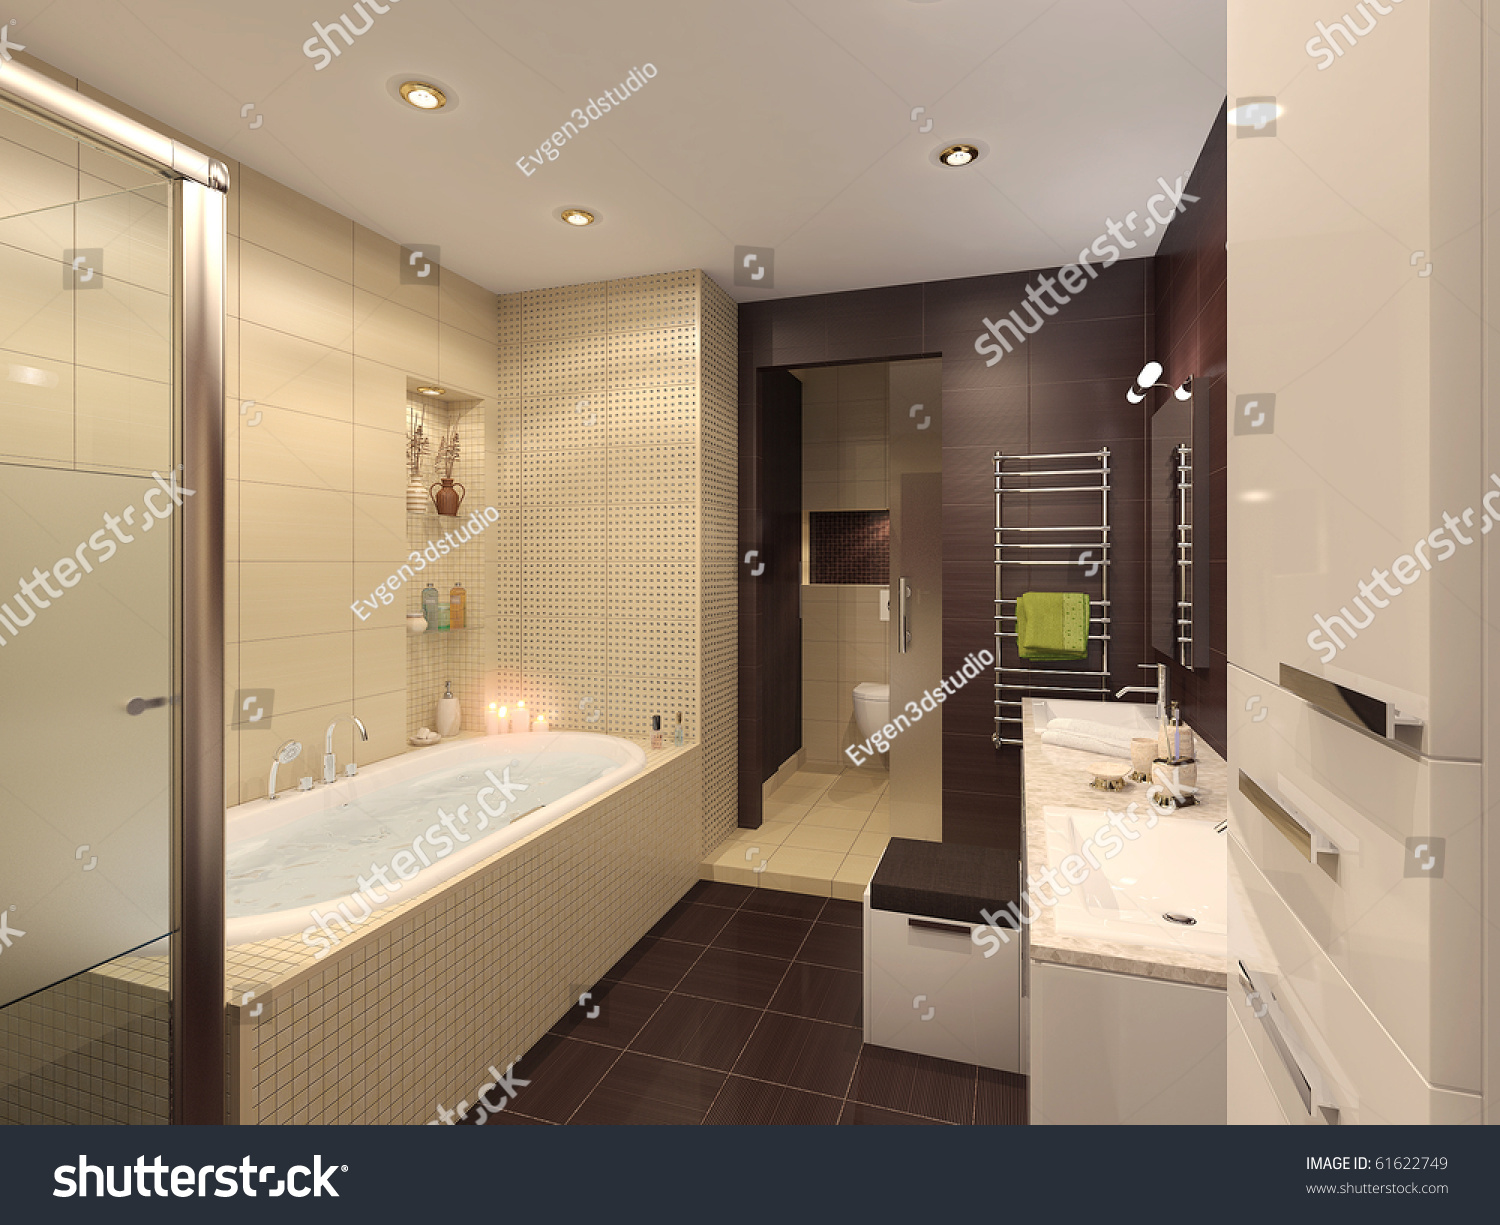 stock-photo-bathroom-d-visualization-61622749